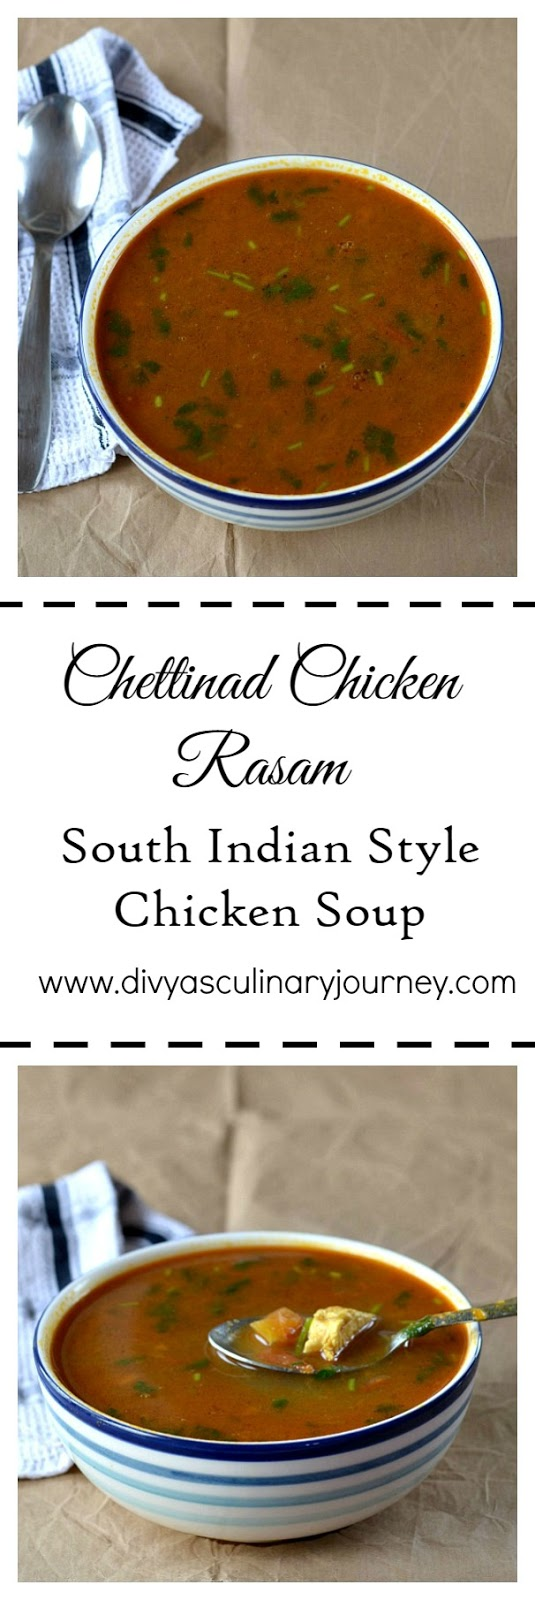 chicken rasam, chicken soup